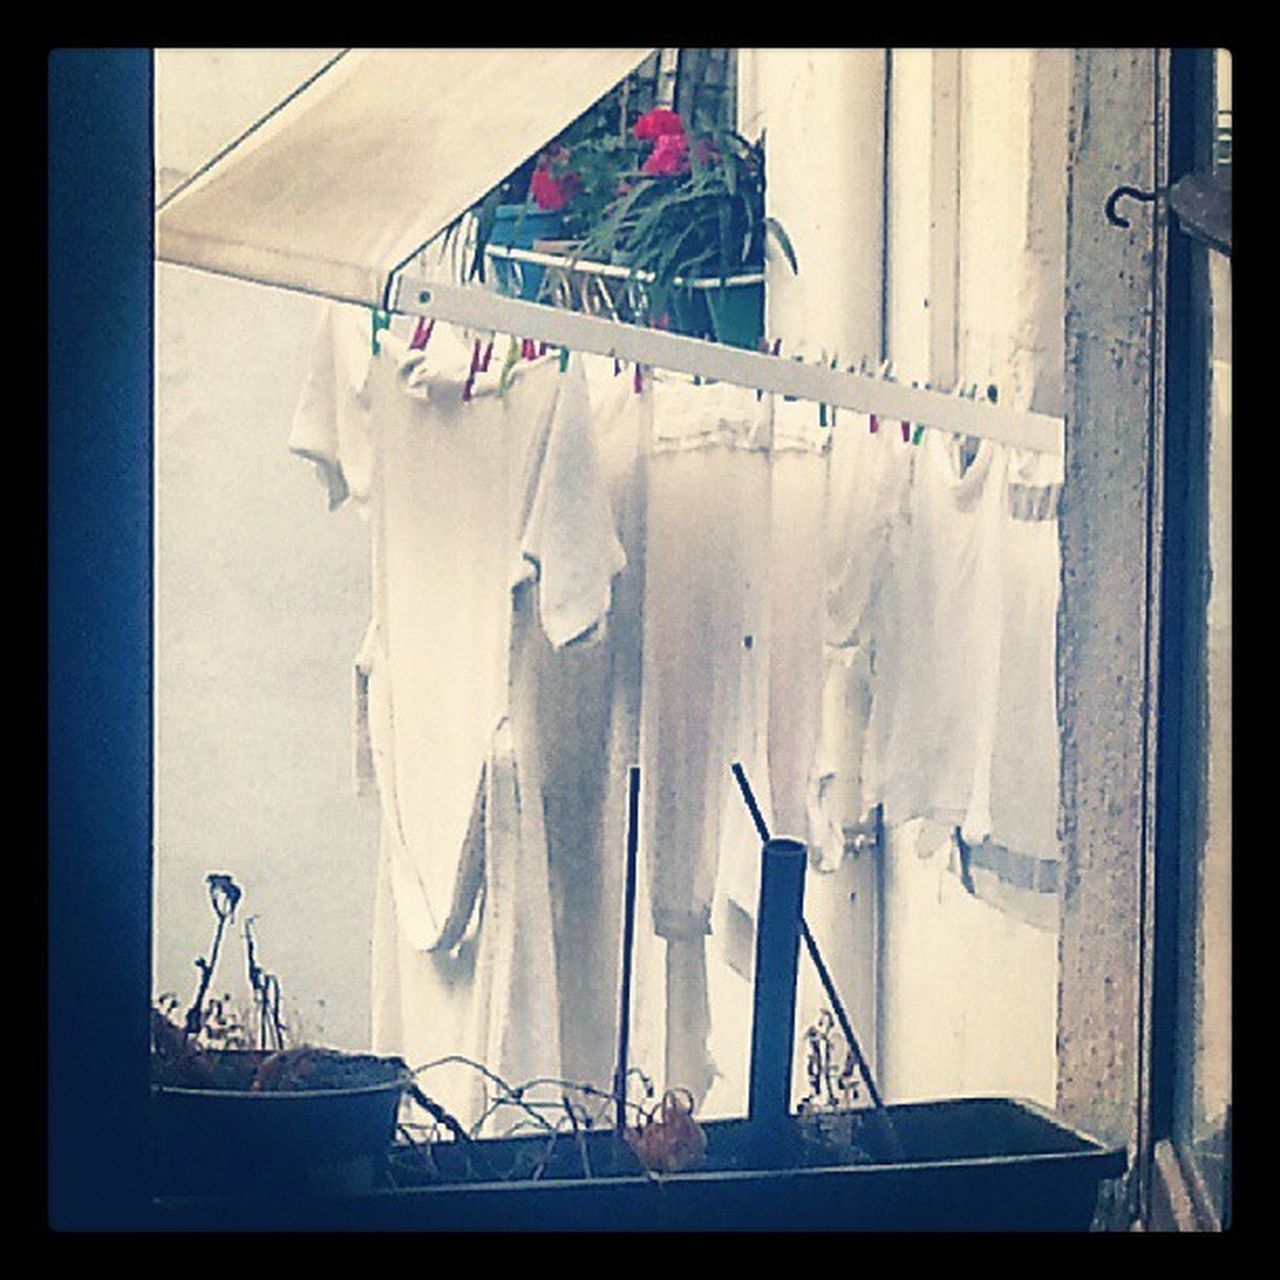 hanging, drying, clothesline, clothespin, coathanger, indoors, no people, day, close-up